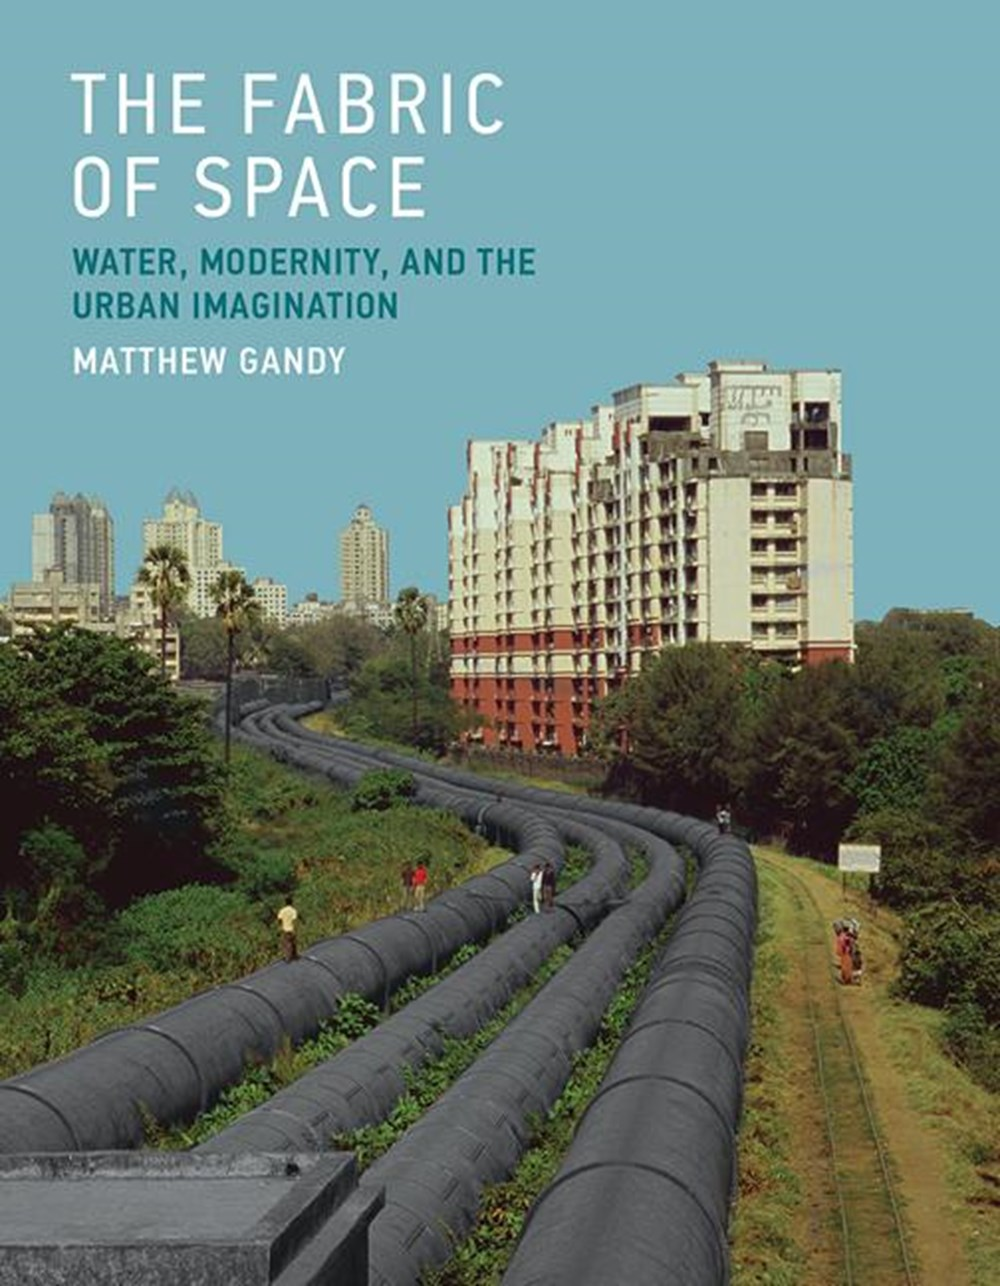 Fabric of Space Water, Modernity, and the Urban Imagination